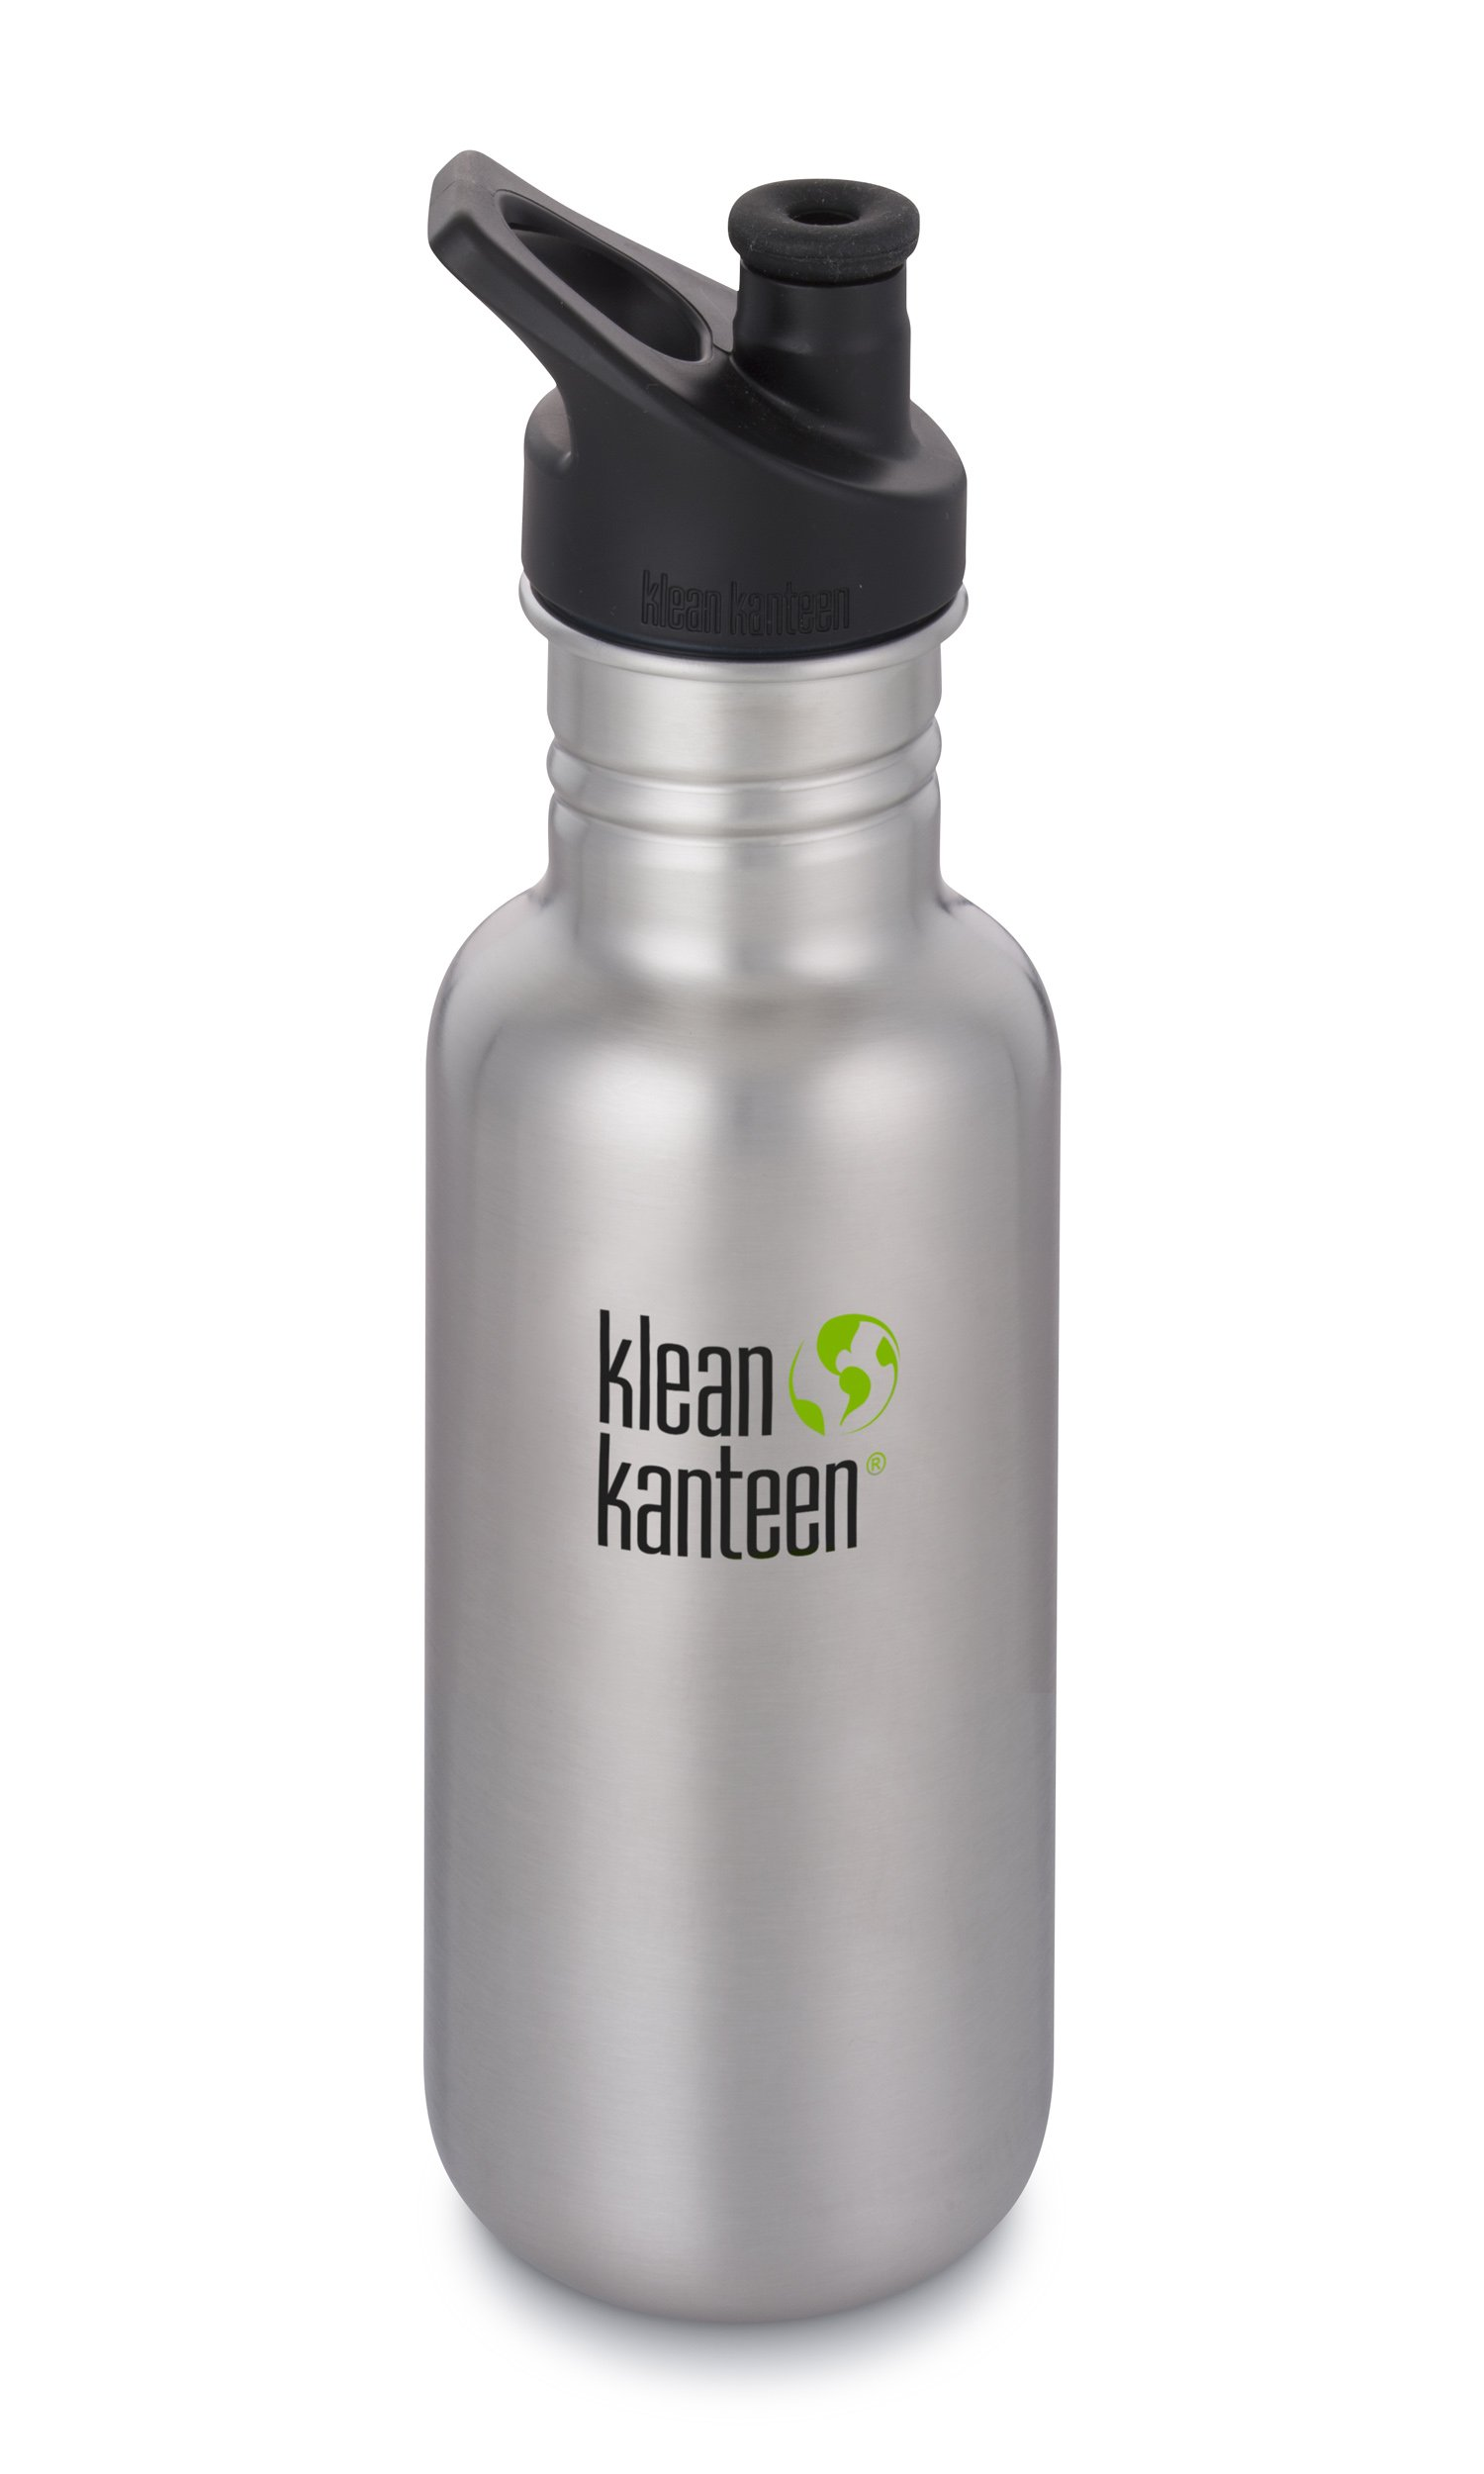 Klean Kanteen 18oz Classic Stainless Steel Water Bottle Single Wall with Leak Resistant Sport Cap 3.0 - Brushed Stainless by Klean Kanteen